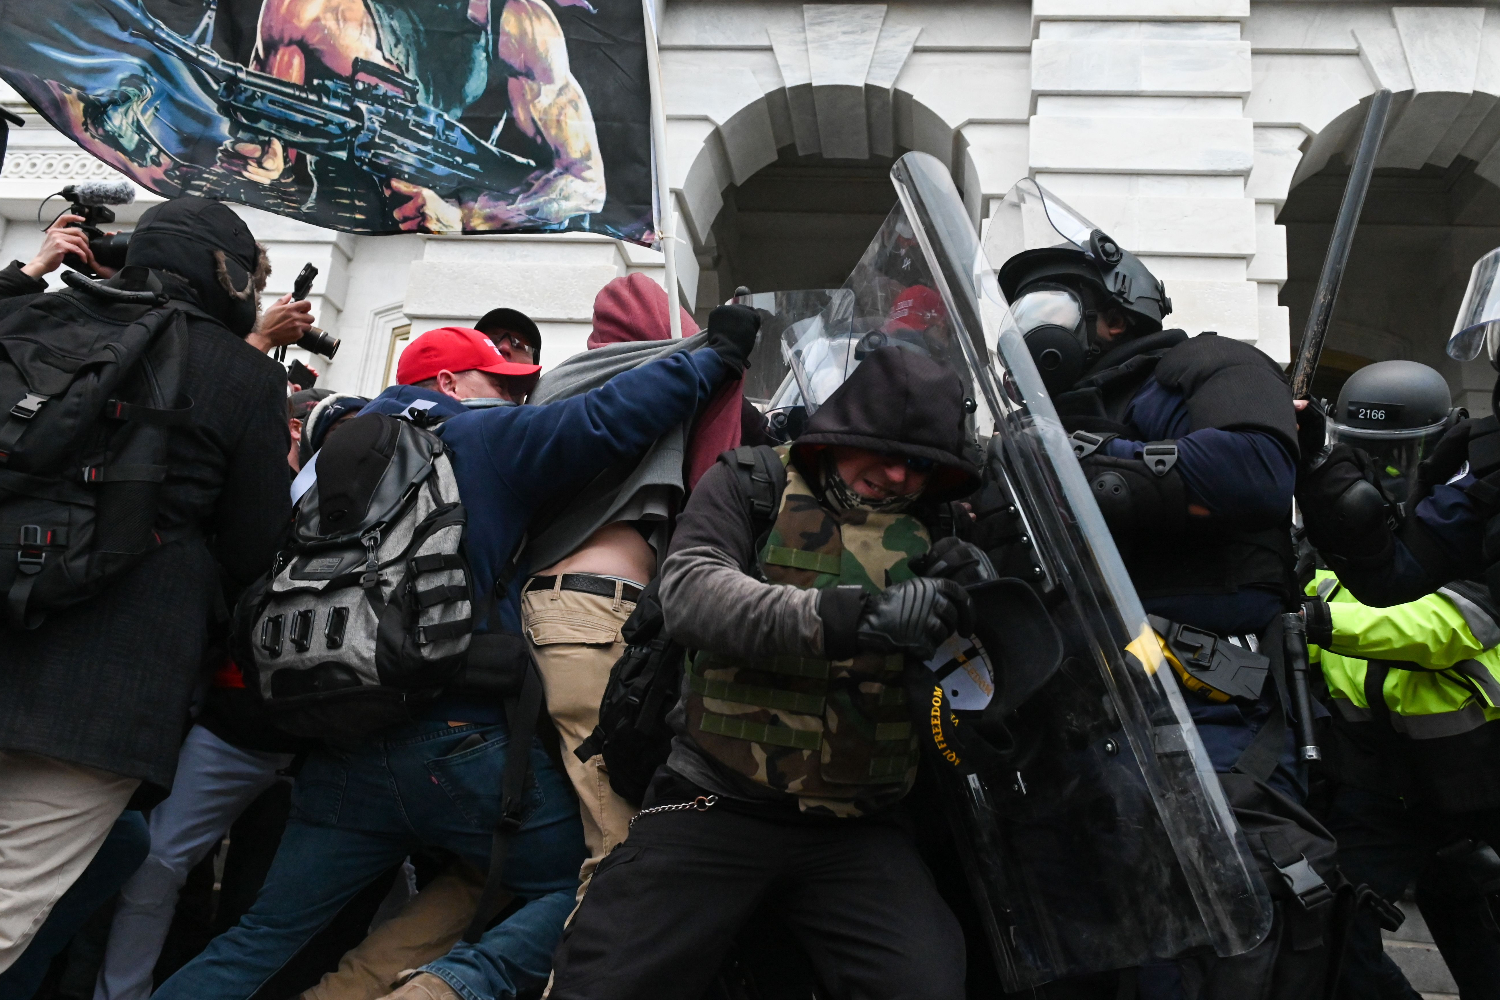 Riot police push back a crowd of supporters of U.S. President Donald Trump at the Capitol